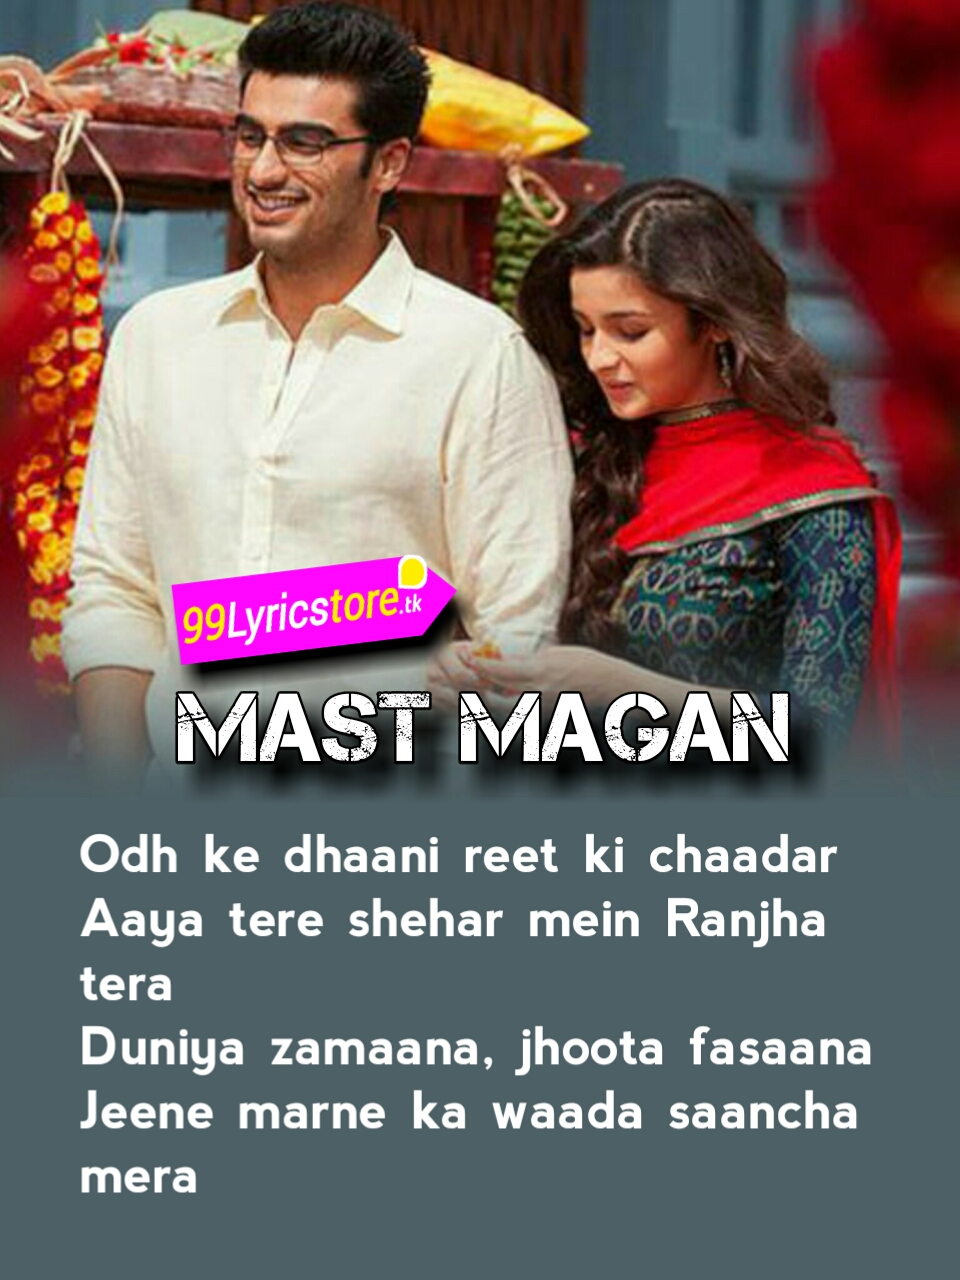 Hindi Song Lyrics, Top Bollywood Song Lyrics, Arijit Song Lyrics, Top Arijit Singh Song Lyrics, Alia Bhatt Song Lyrics, Arjun Kapoor Song Lyrics, Love Quotes in Hindi